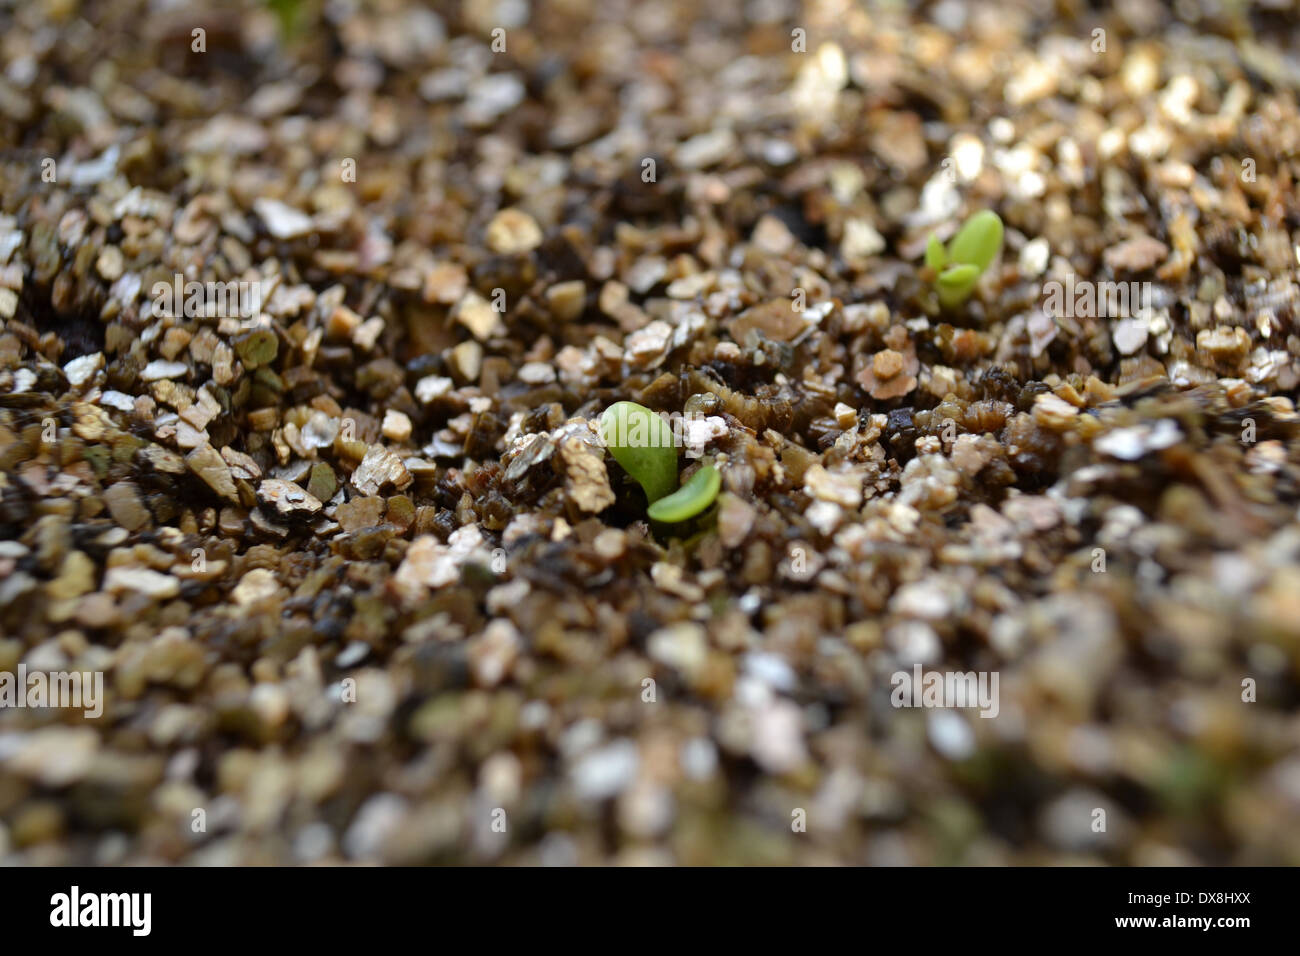 Vermiculite Stock Photos & Vermiculite Stock Images - Alamy